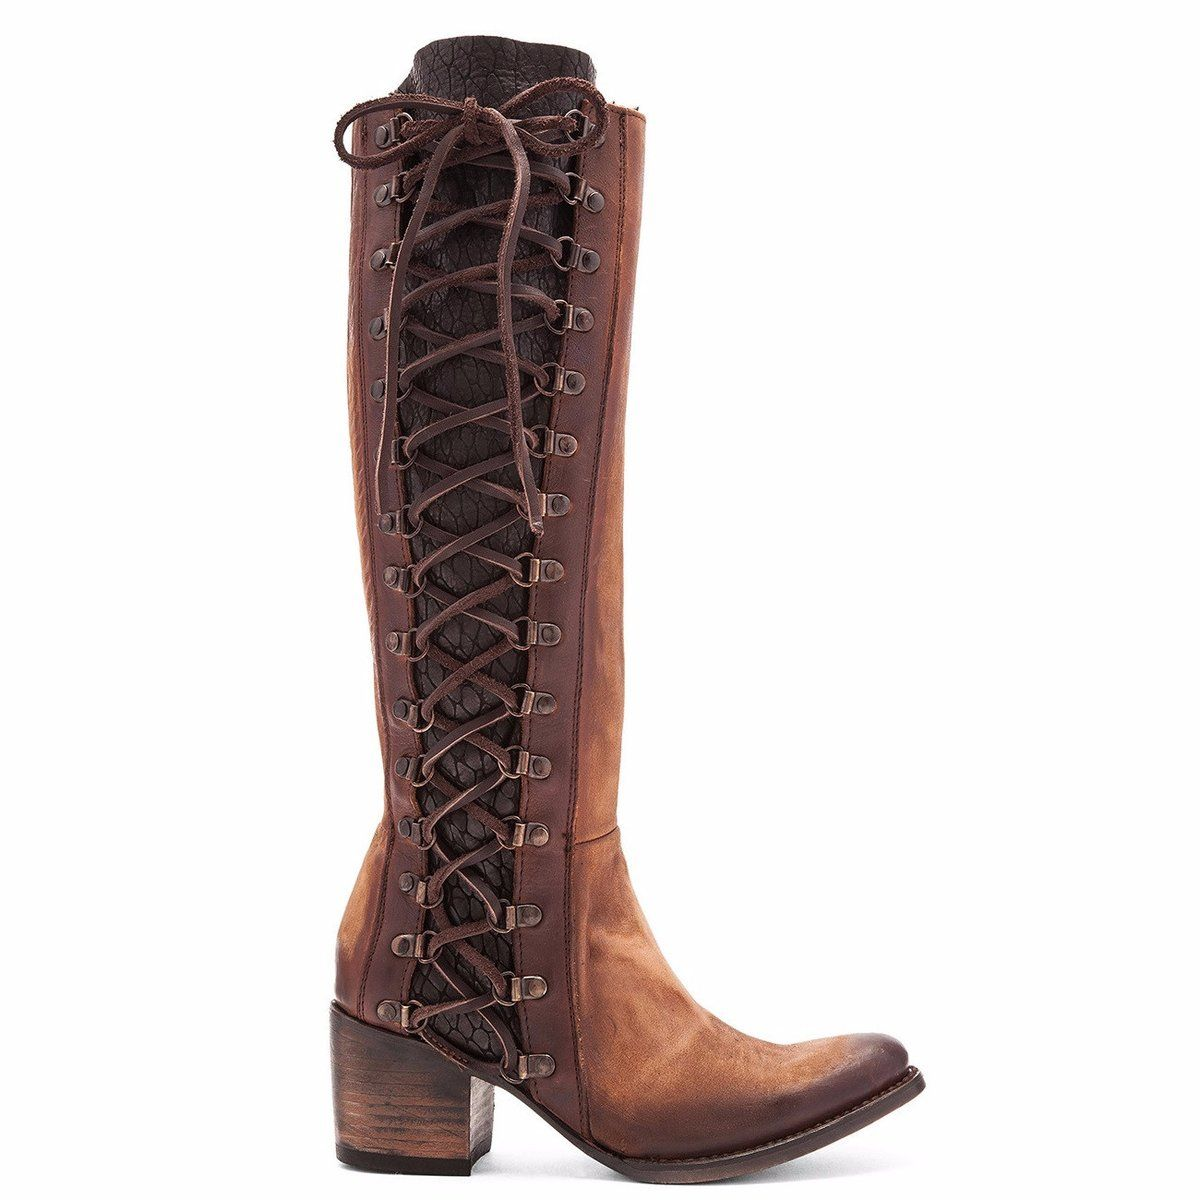 b7d532e47 Freebird by Steve Madden. Style Number: FB-Wyatt-Cognac. Lace-up side with  tie closure. Side zip closure. Round toe. Single stitch welt. Leather  lining.